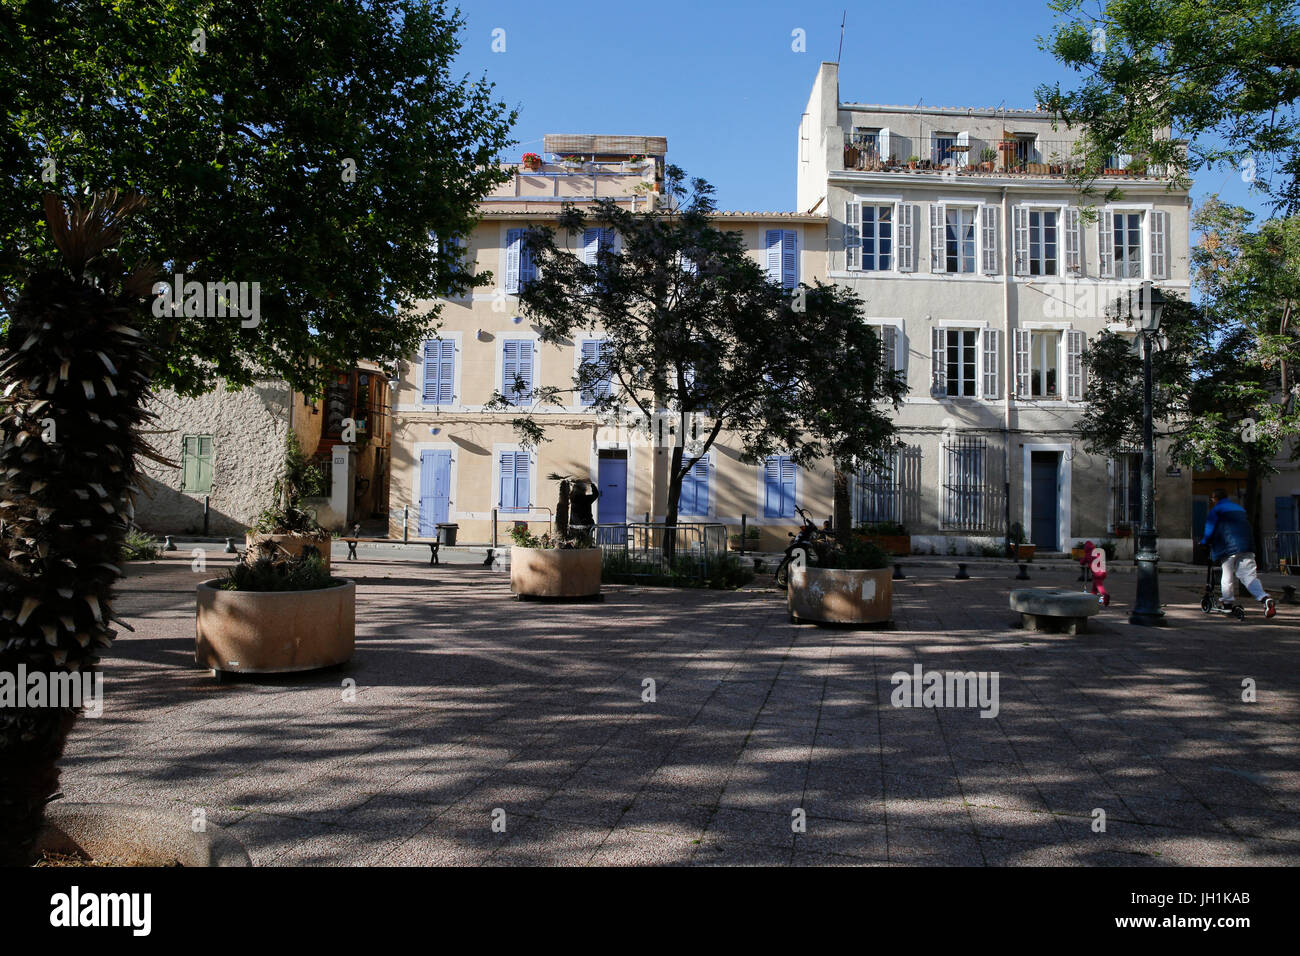 Le Panier neighbourhood in Marseille. France. - Stock Image